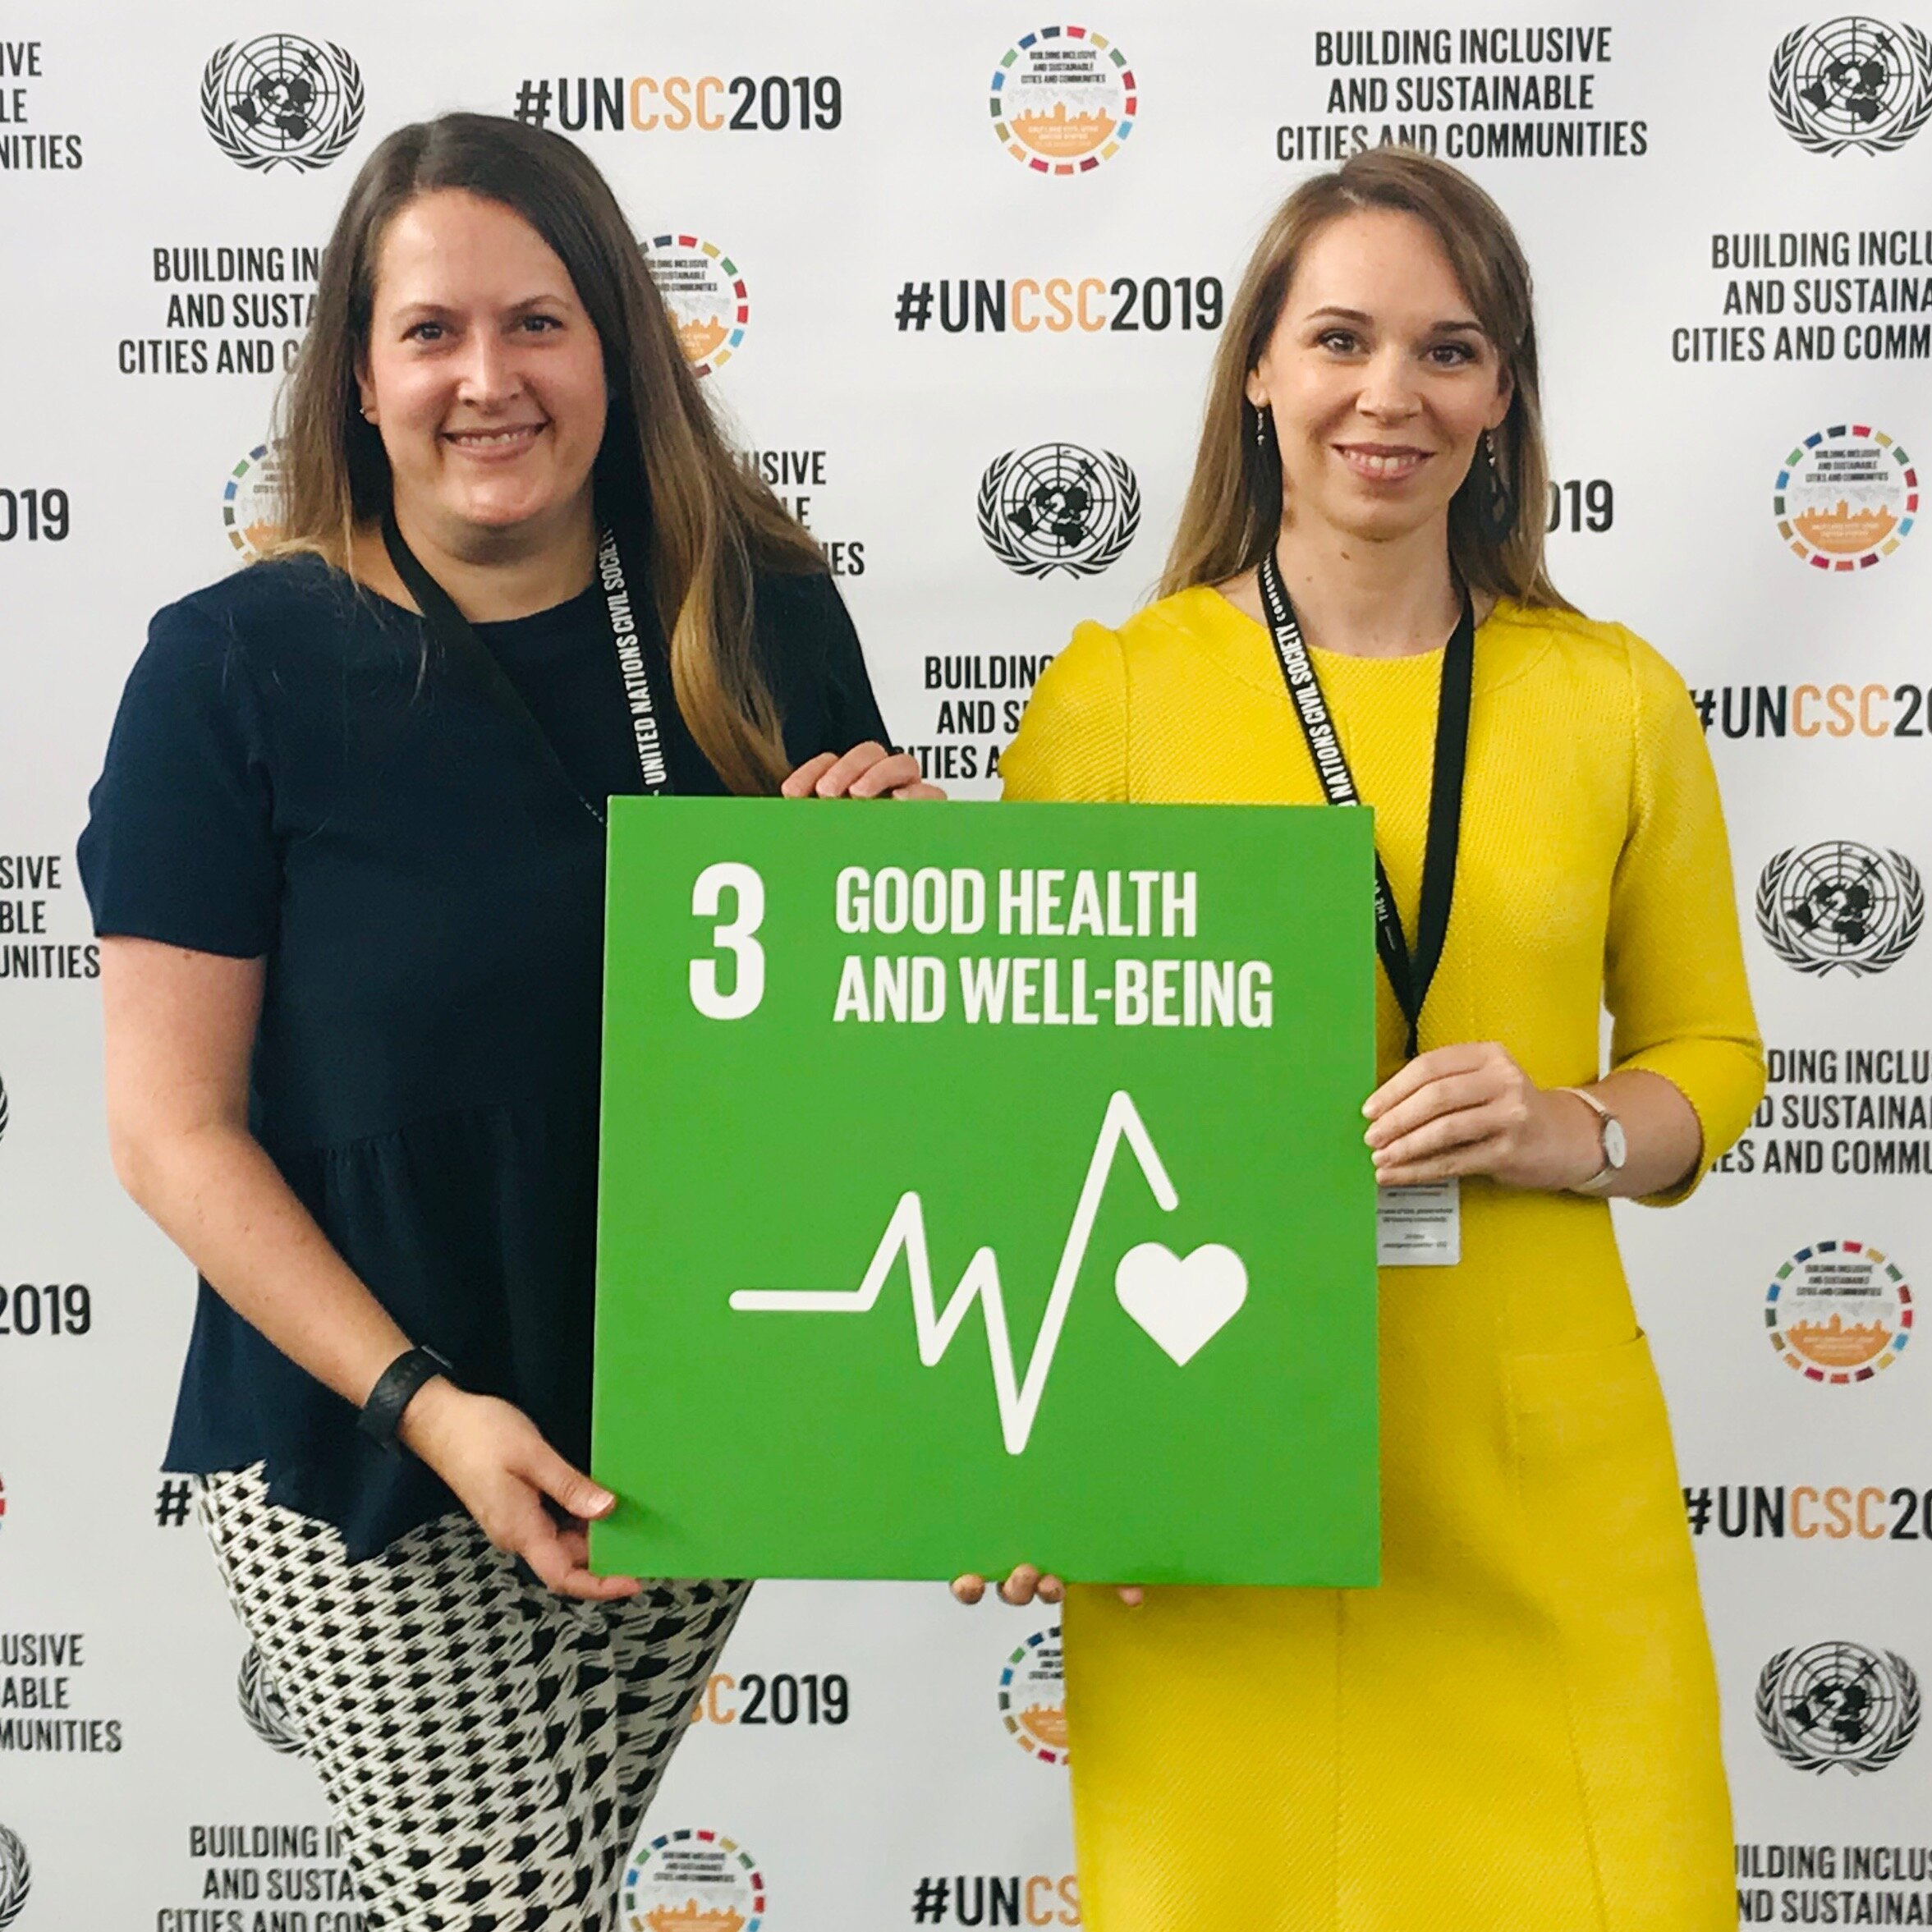 Shelley Henson and Corrine Ellsworth Beaumont at the UN Conference.